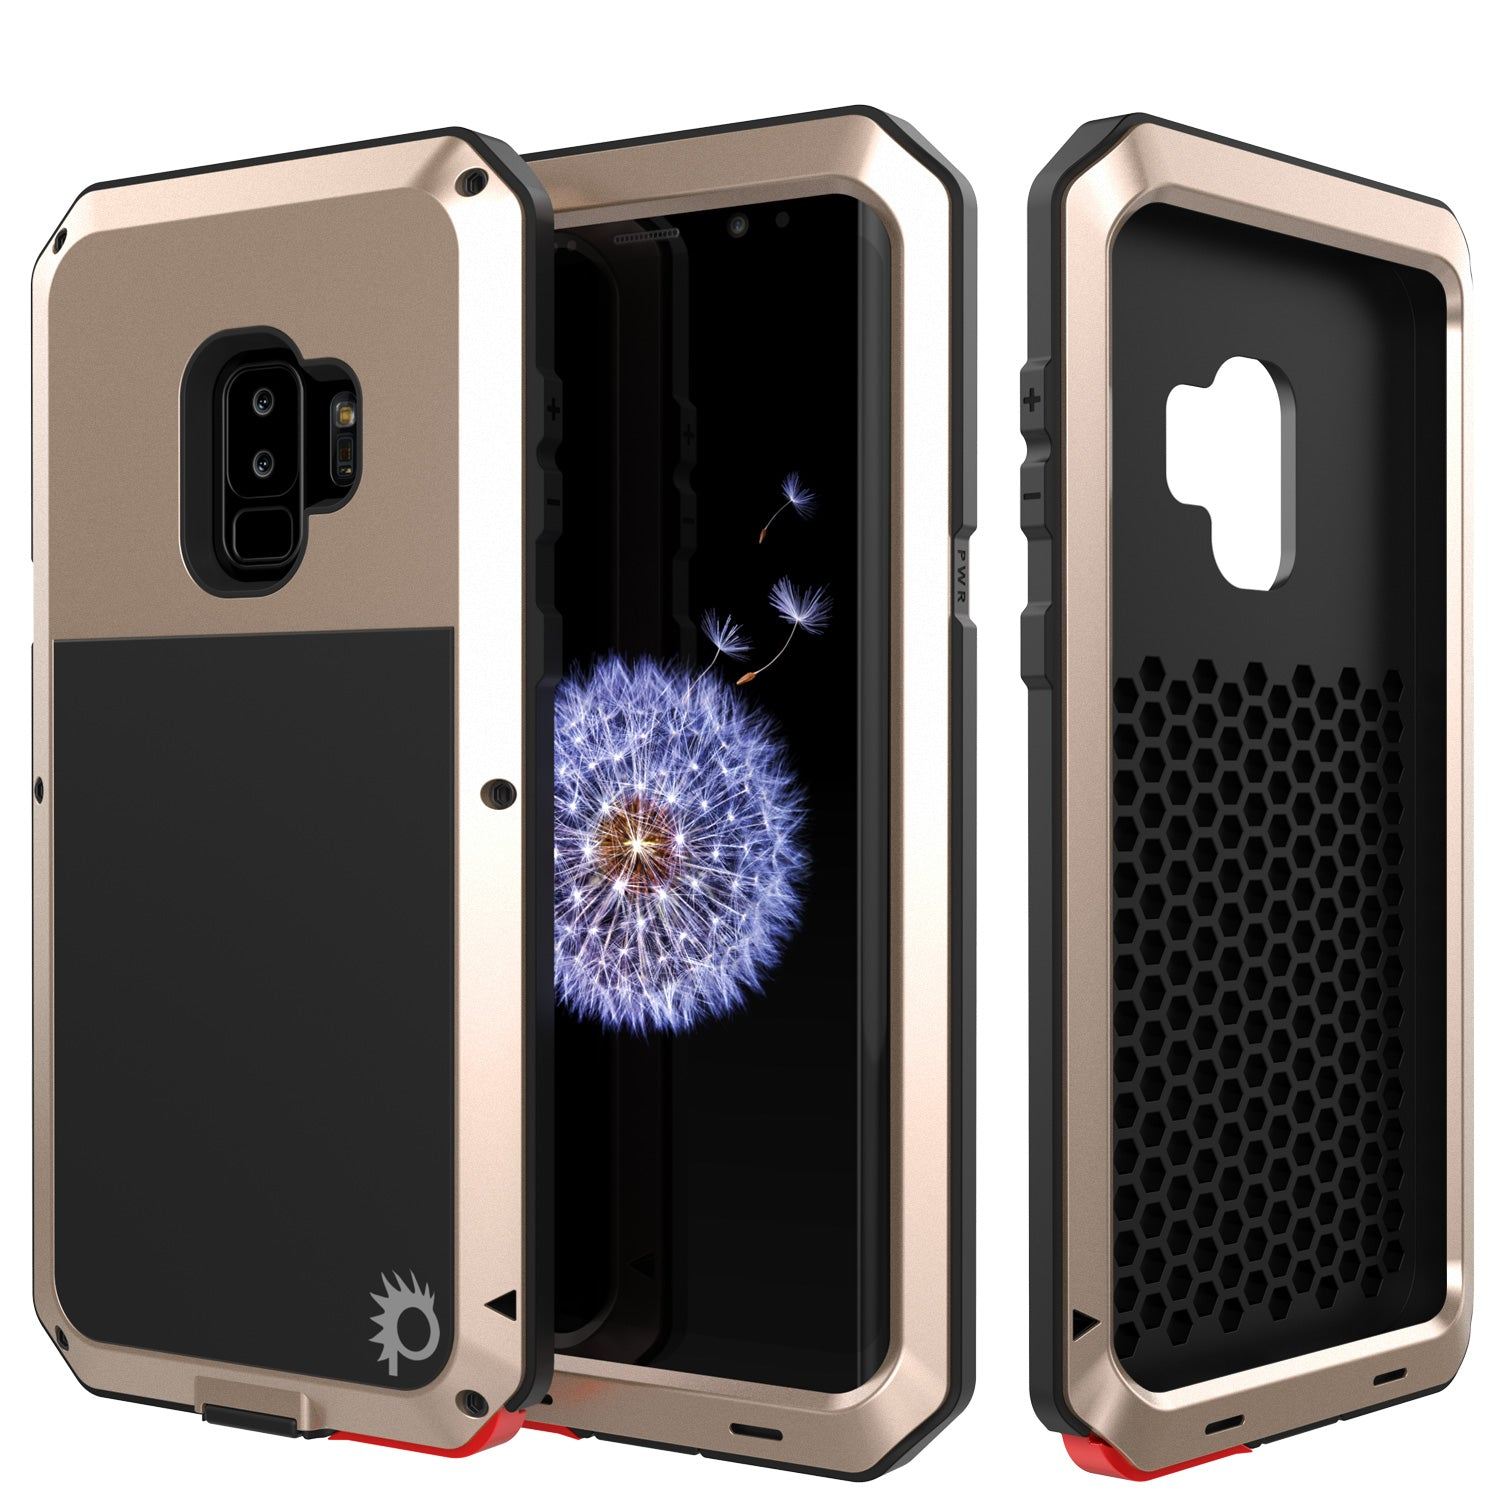 Galaxy S9 Plus Metal Case, Heavy Duty Military Grade Rugged Armor Cover [Gold]